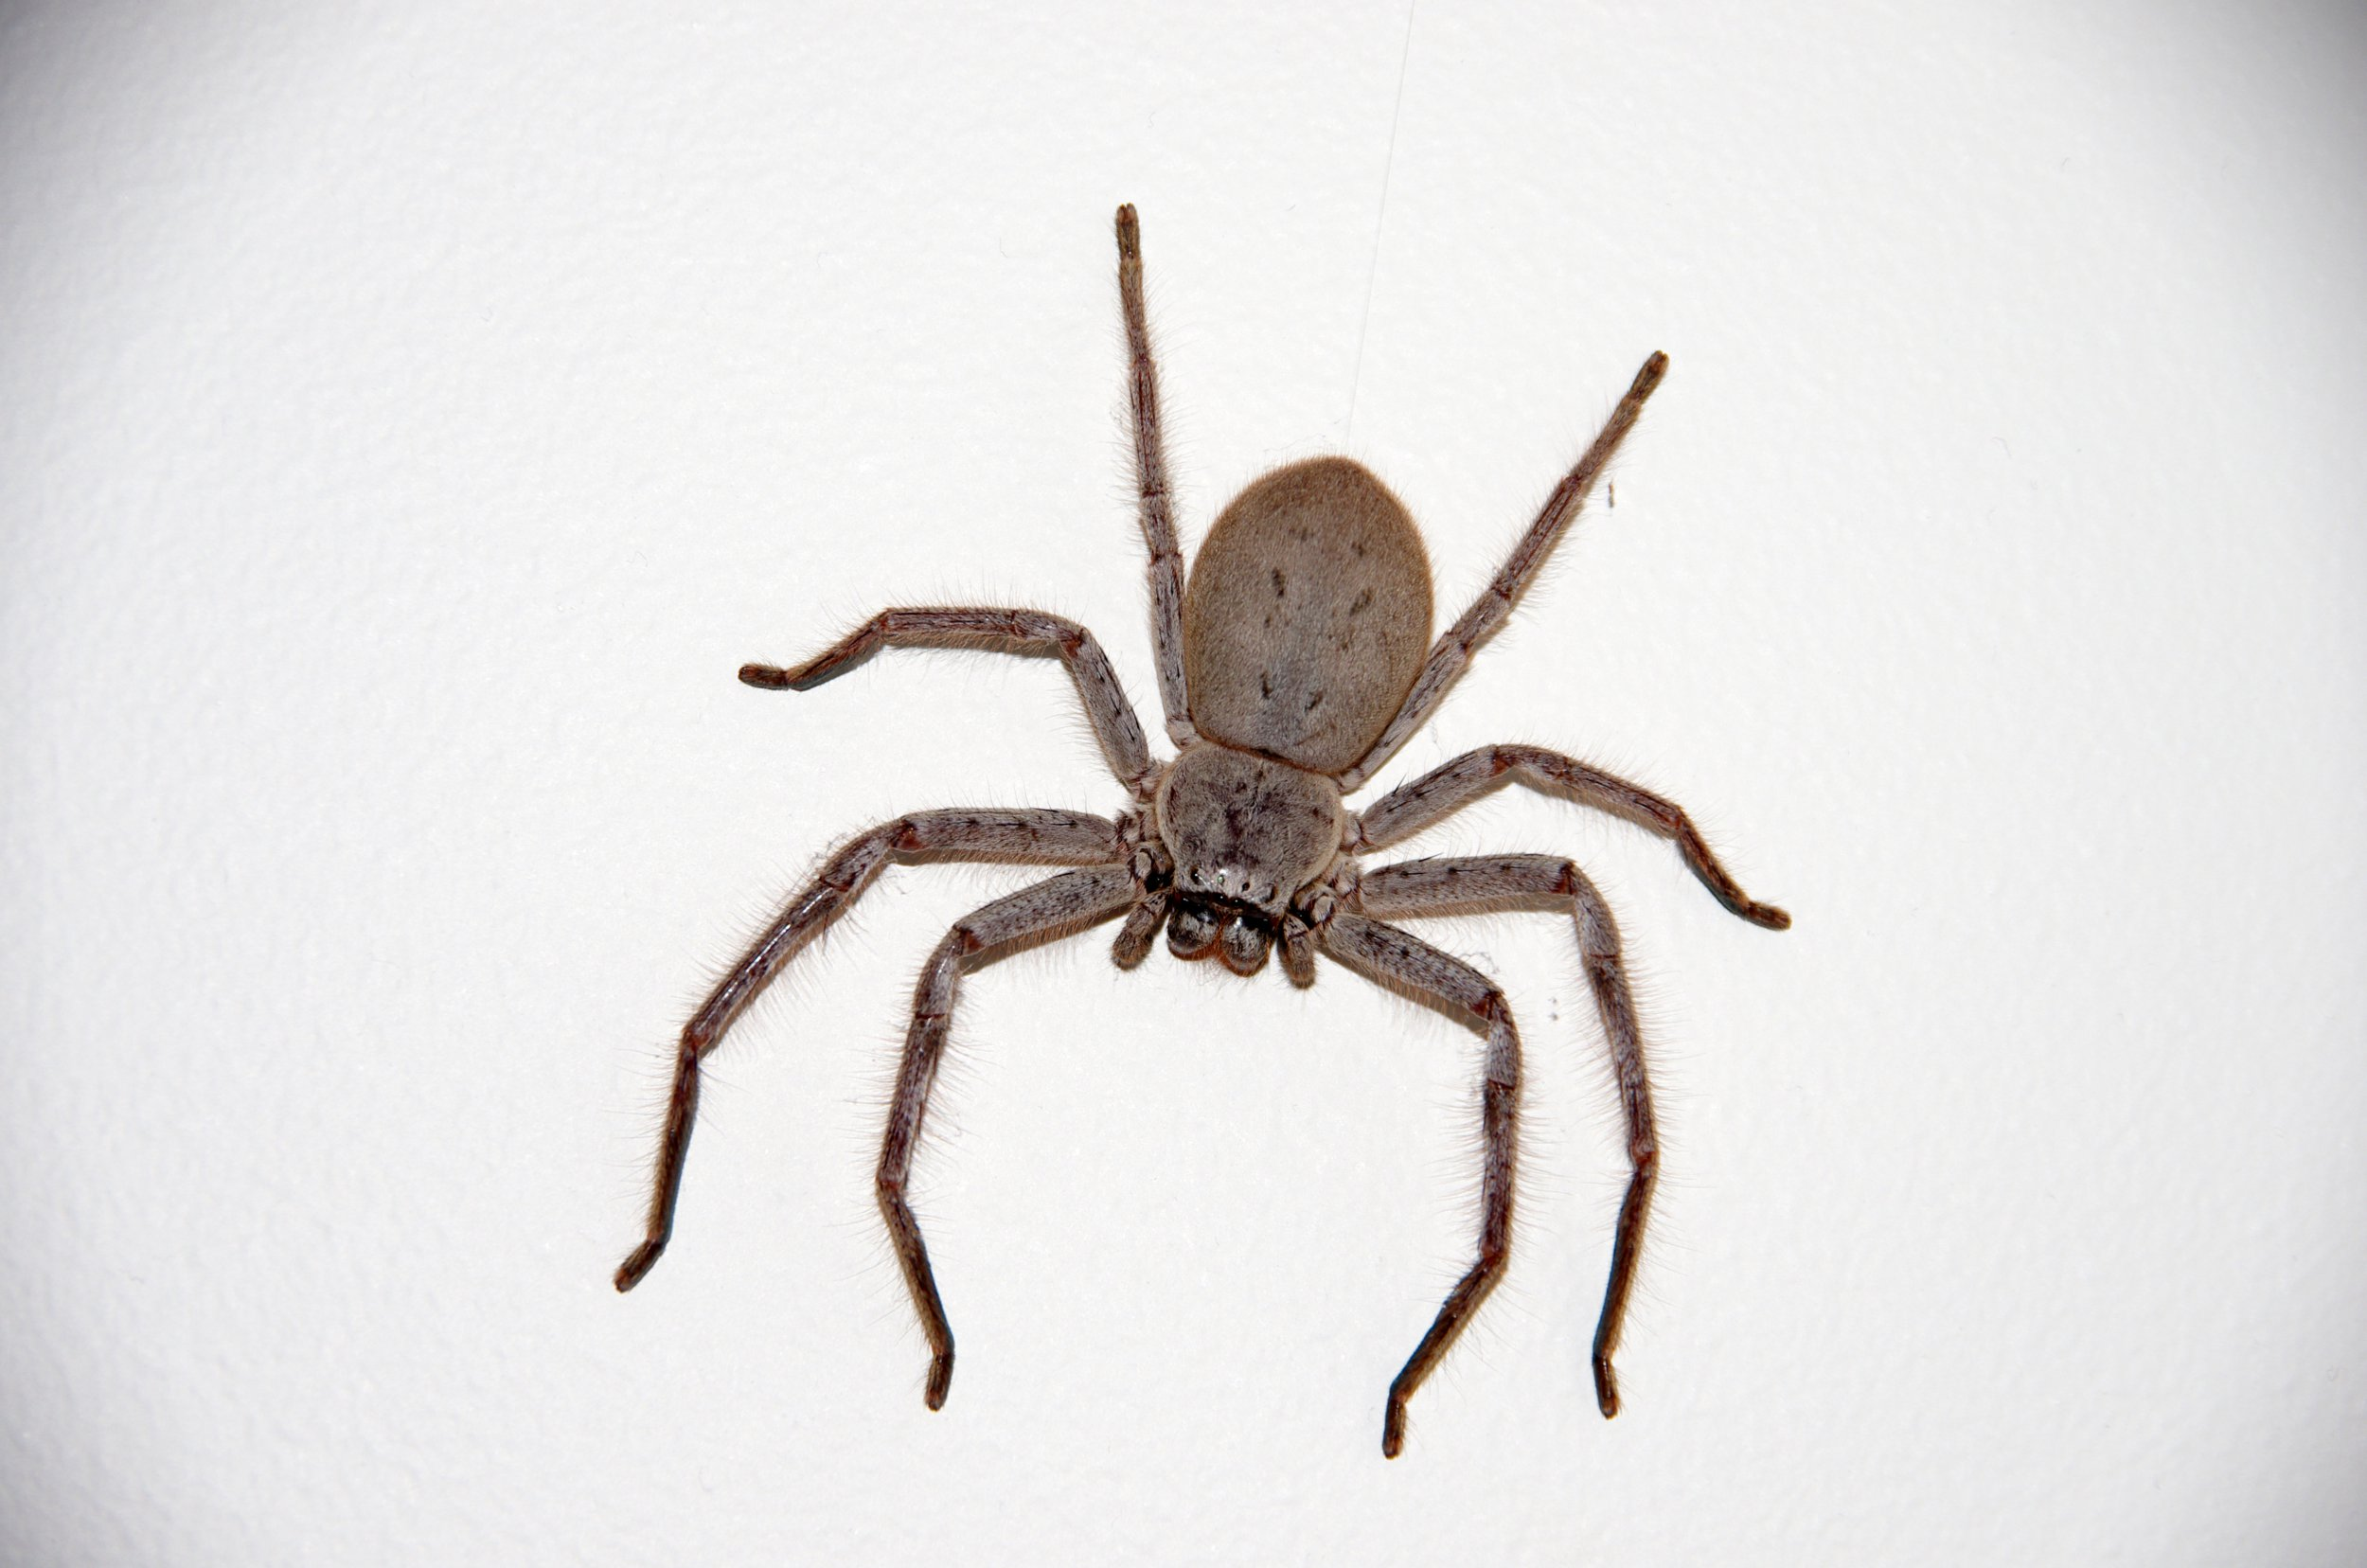 A Huntsman spider clinging to a white-painted wall inside a house in Canberra, Australia.